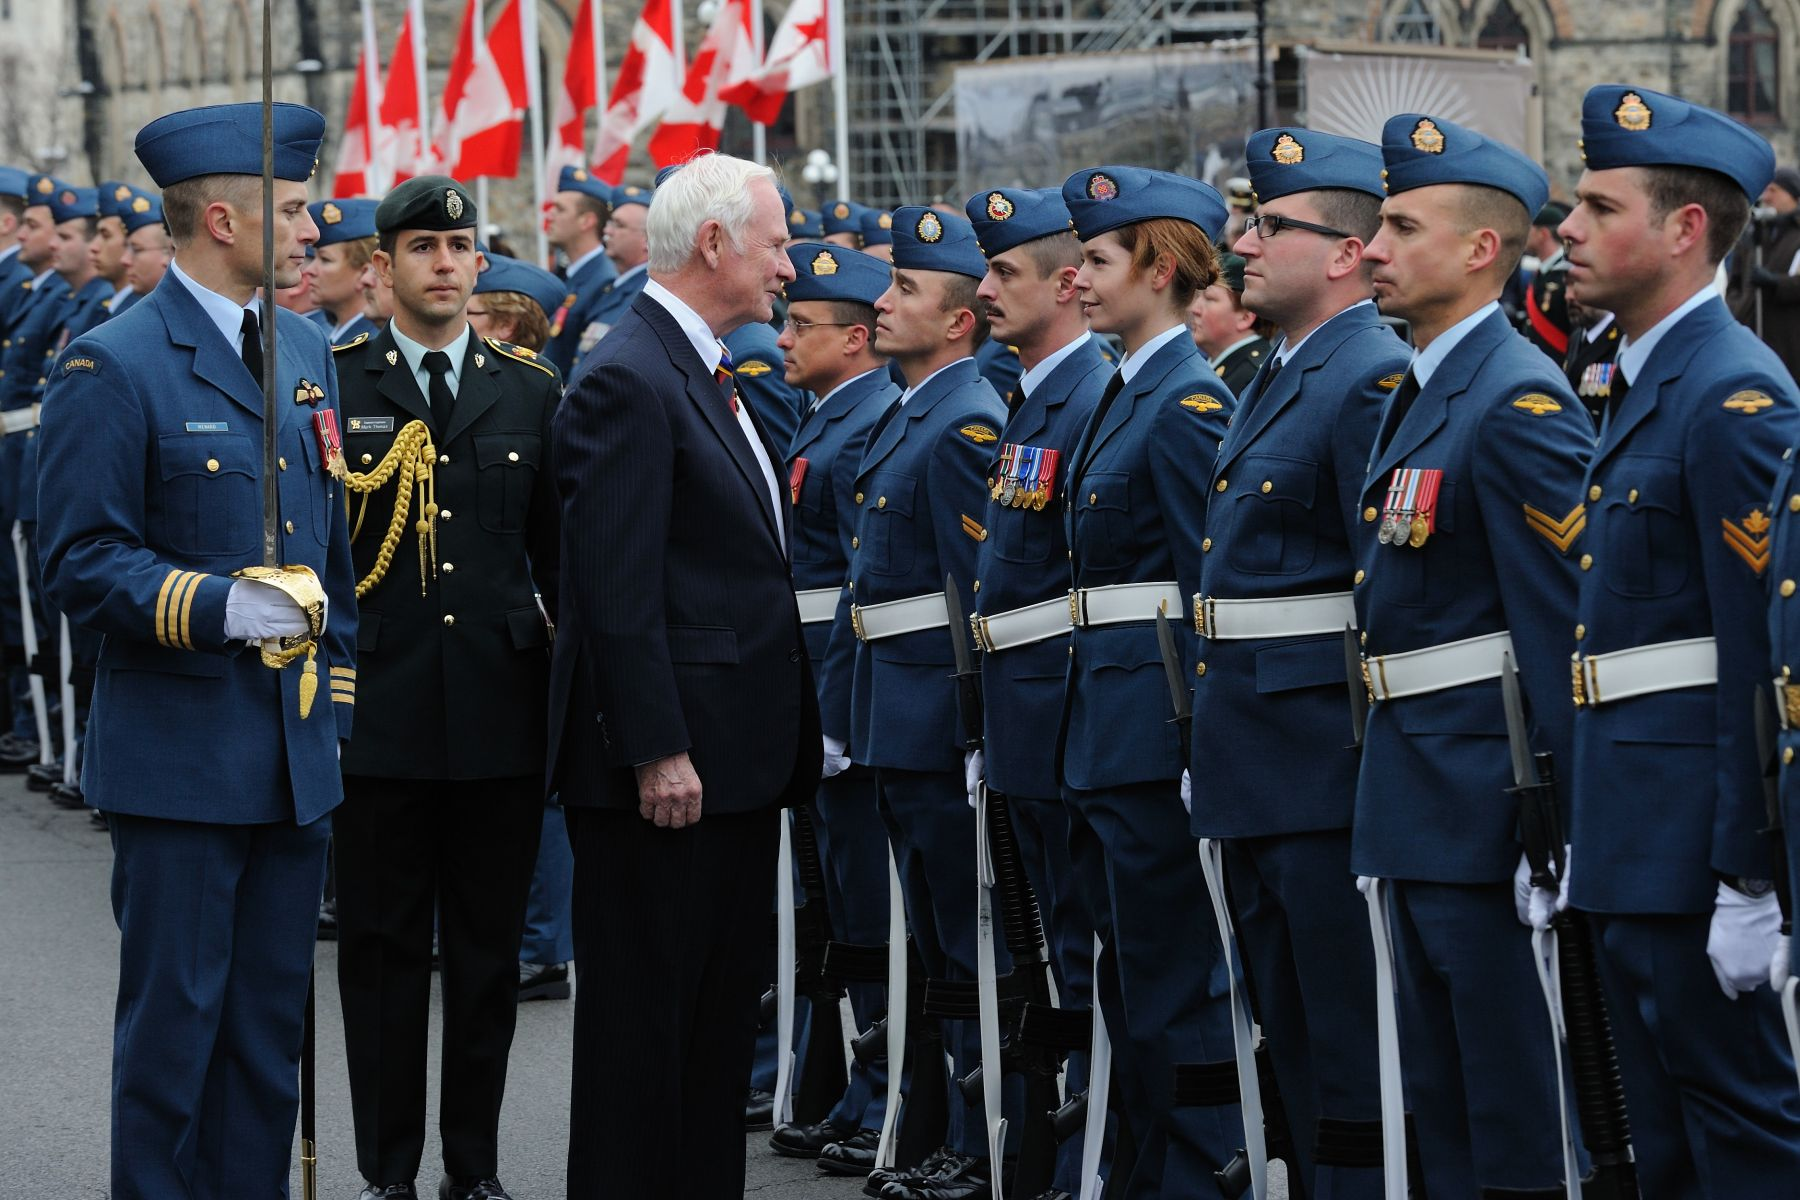 The Guard Commander invited the Governor General to inspect the Guard of Honour.